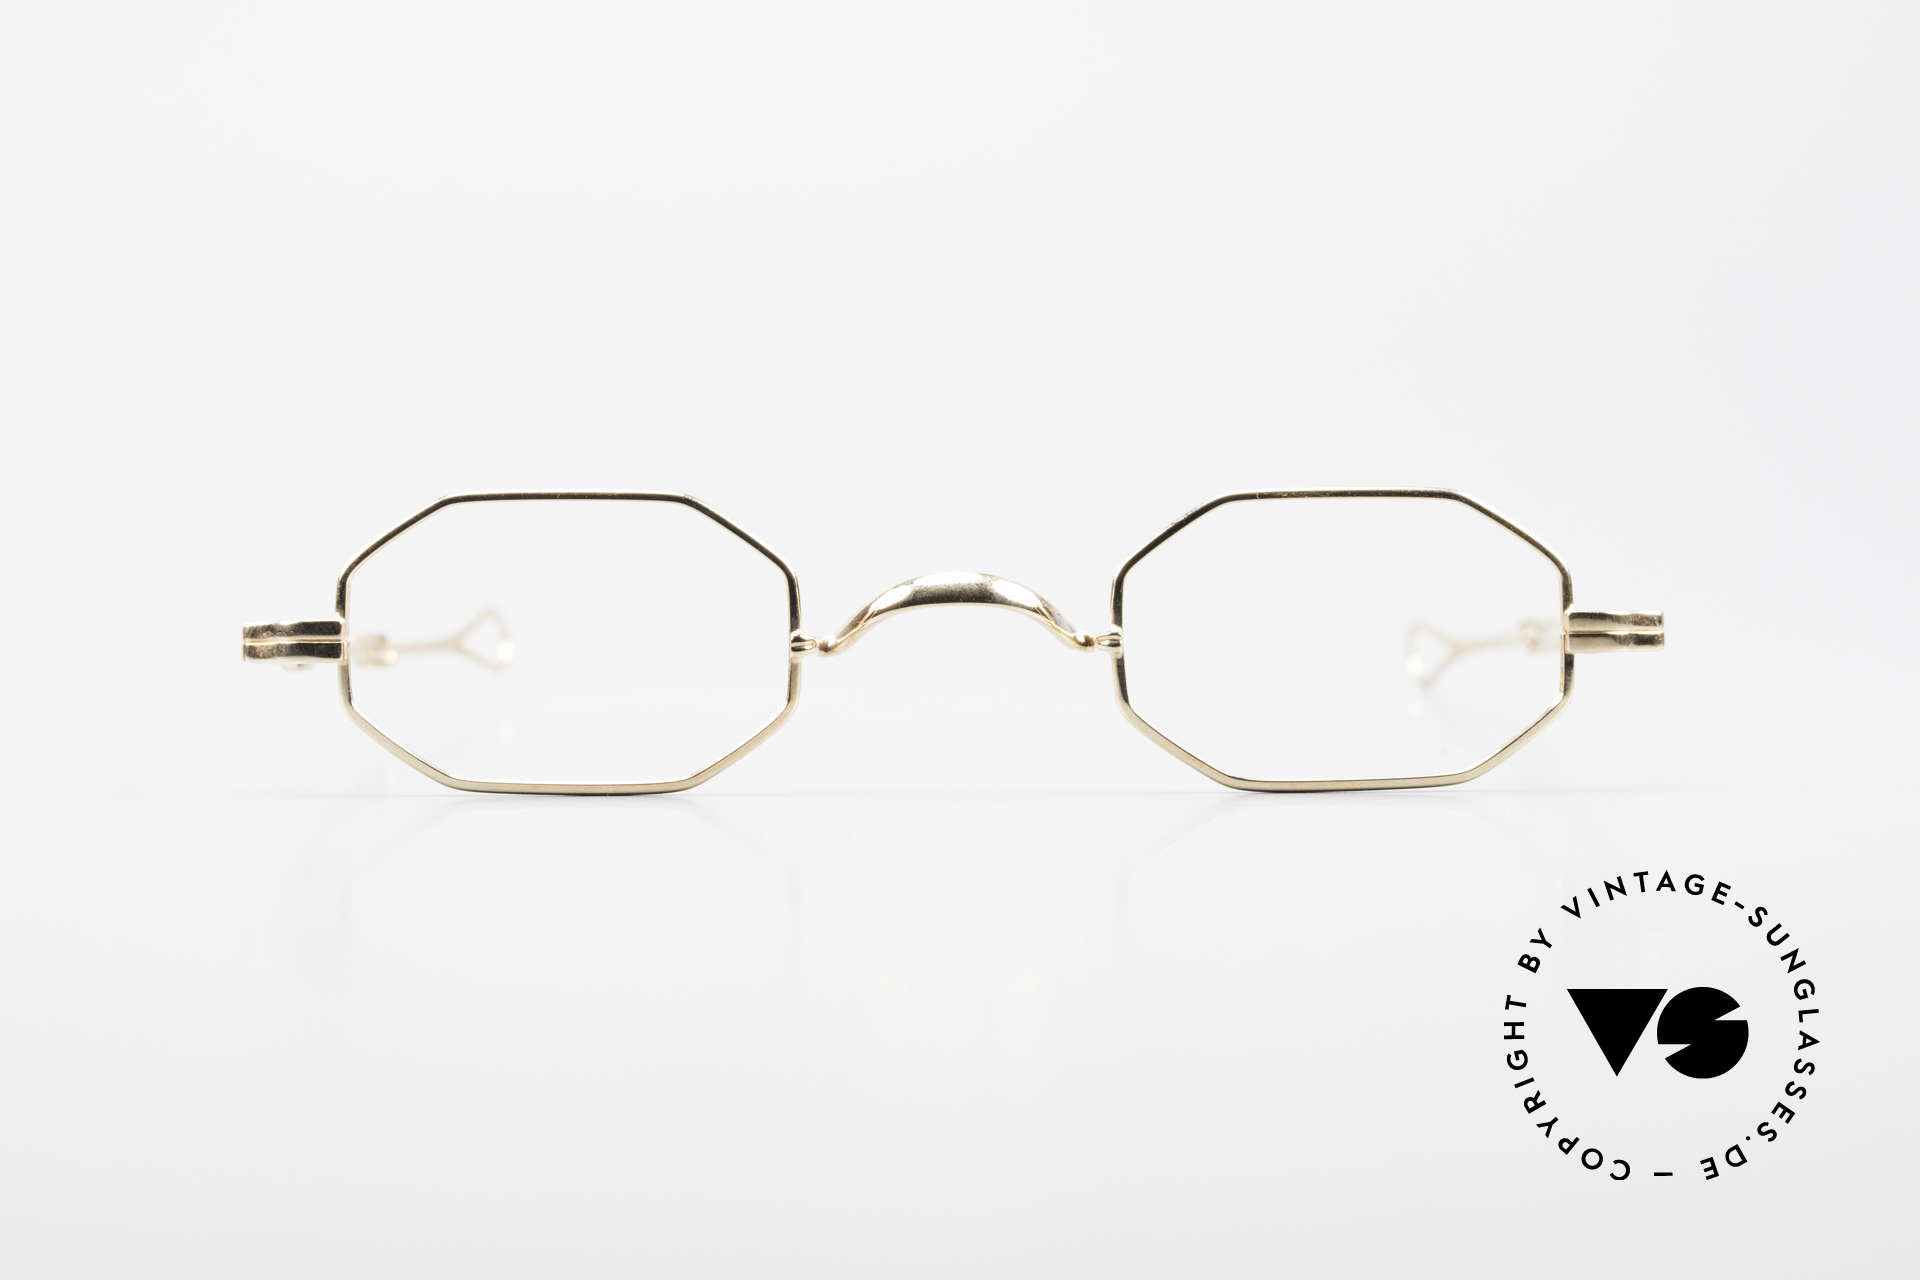 Lunor I 01 Telescopic Octagonal Frame Gold Plated, traditional German brand; quality handmade in Germany, Made for Men and Women